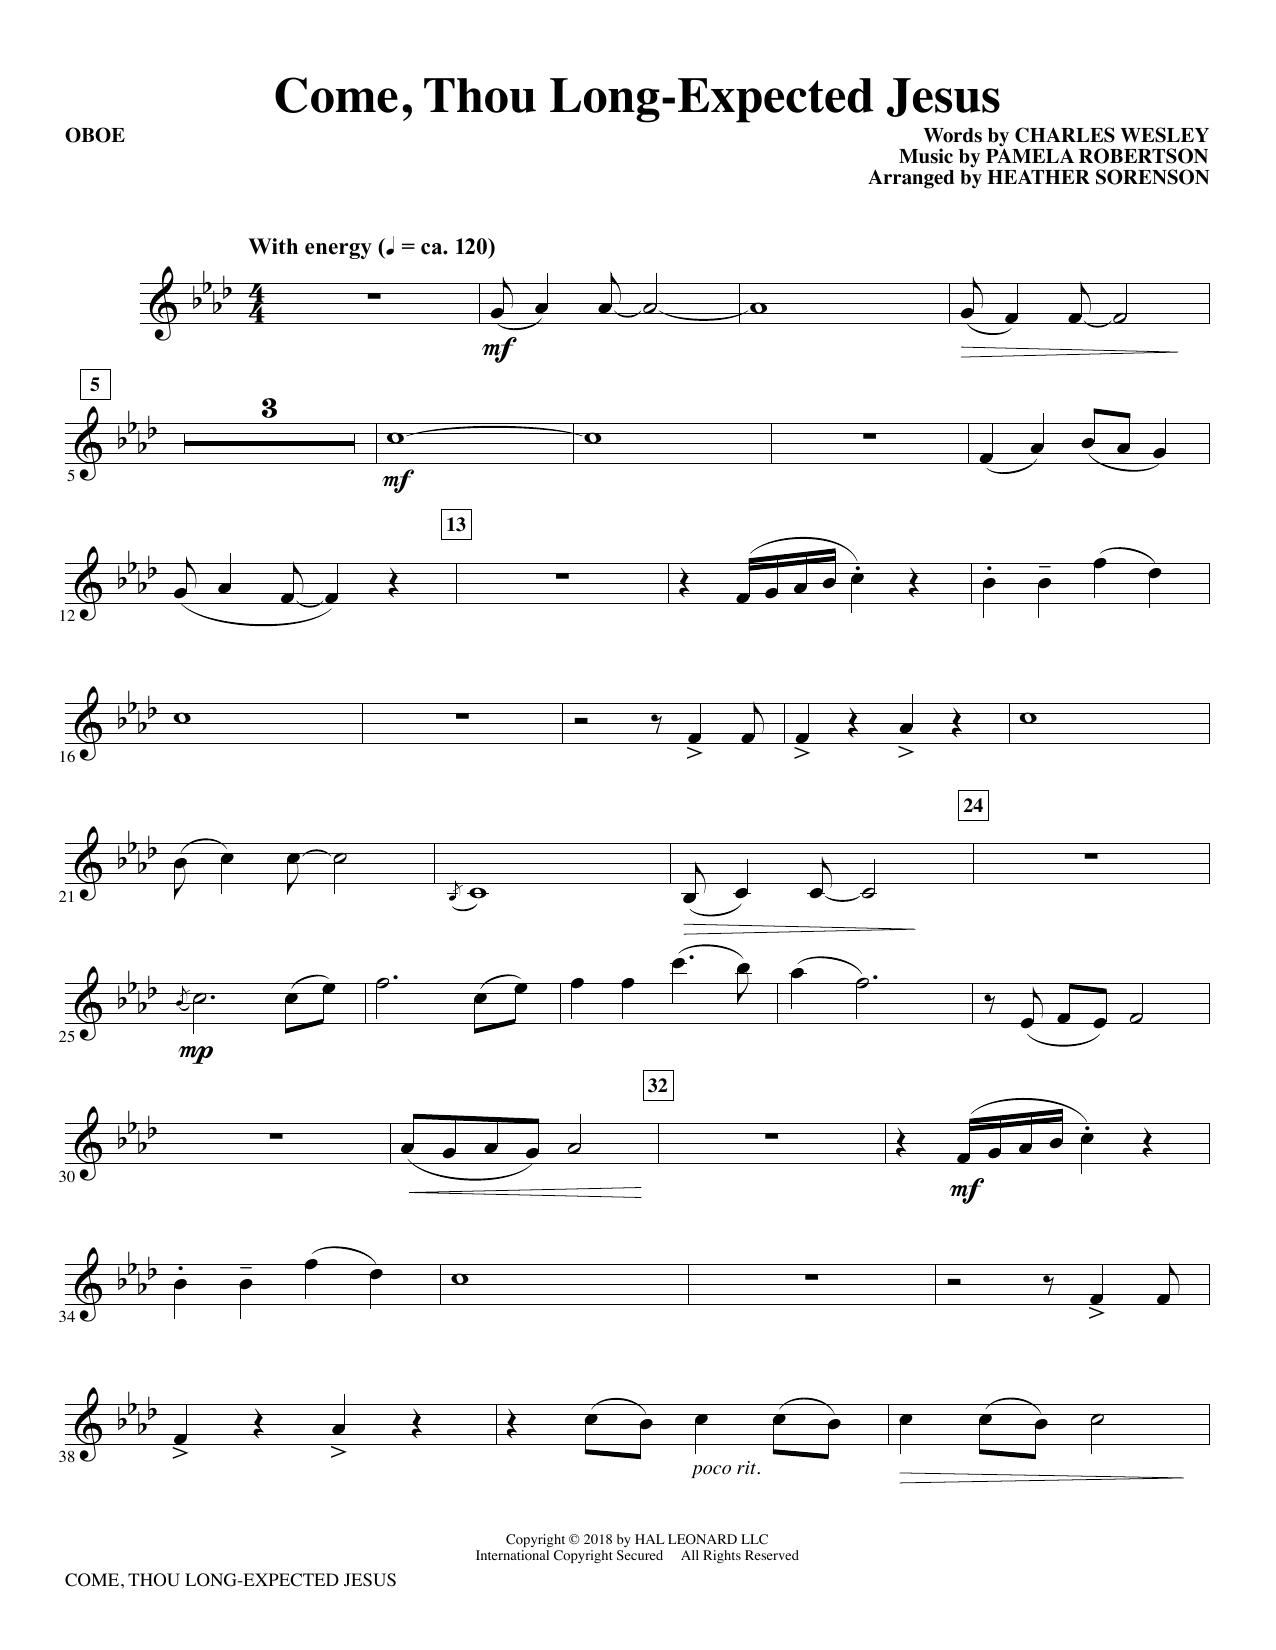 Pamela Robertson Come, Thou Long-Expected Jesus (arr. Heather Sorenson) - Oboe sheet music notes and chords. Download Printable PDF.